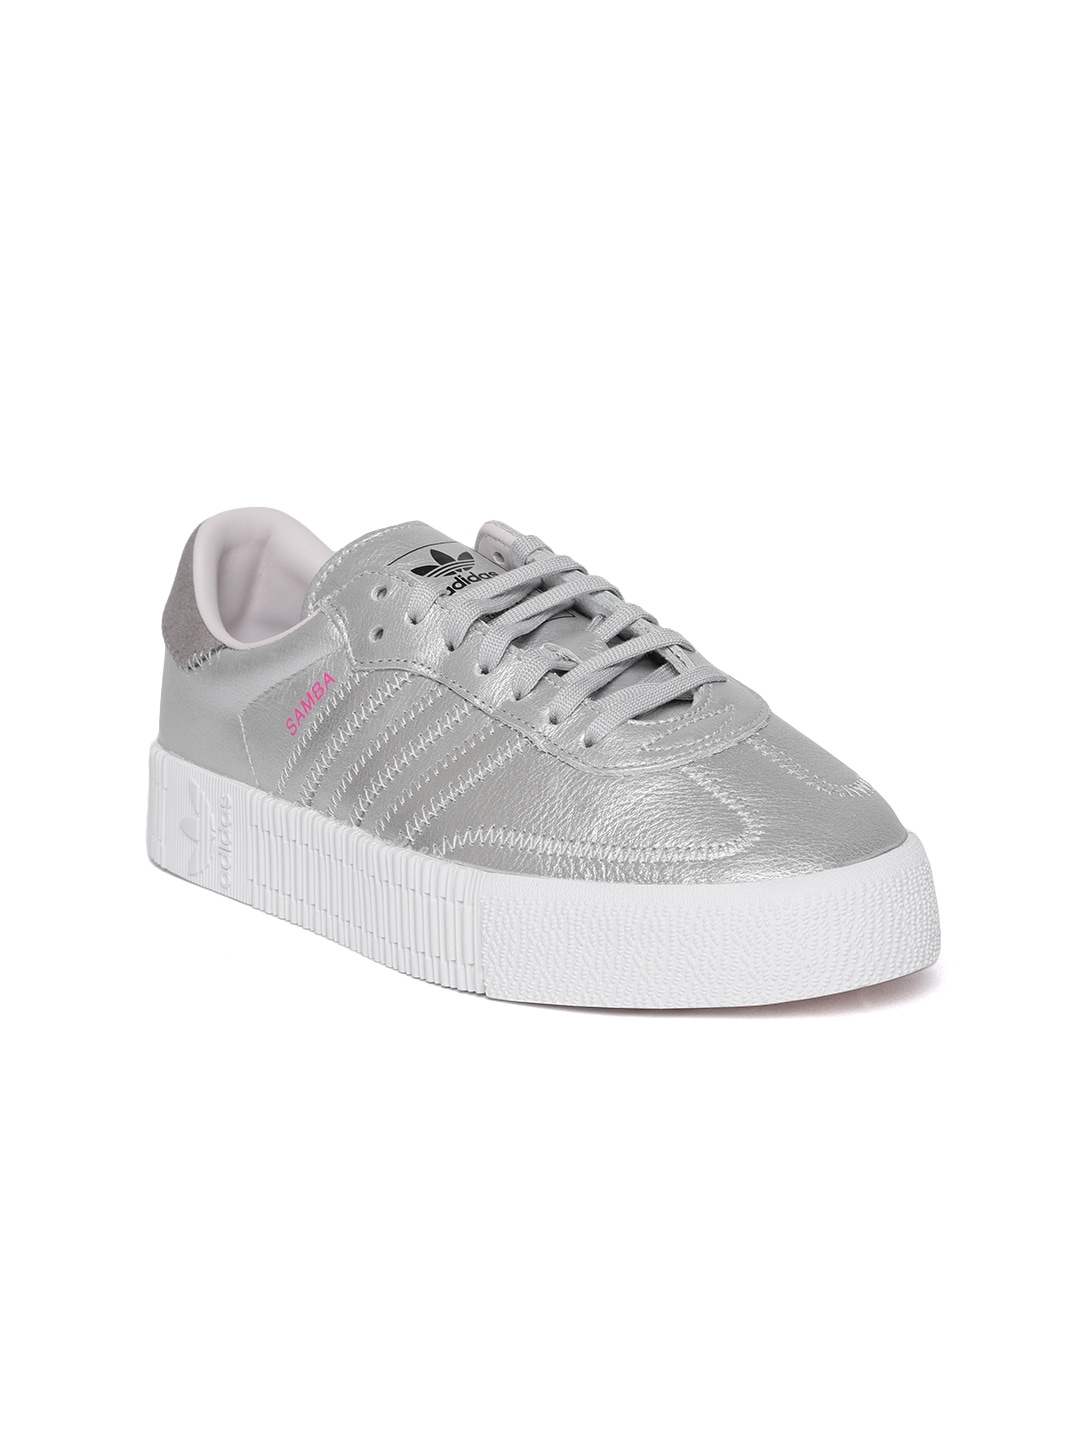 a461d600223873 Adidas Originals Shiloh Casual Shoes - Buy Adidas Originals Shiloh Casual Shoes  online in India